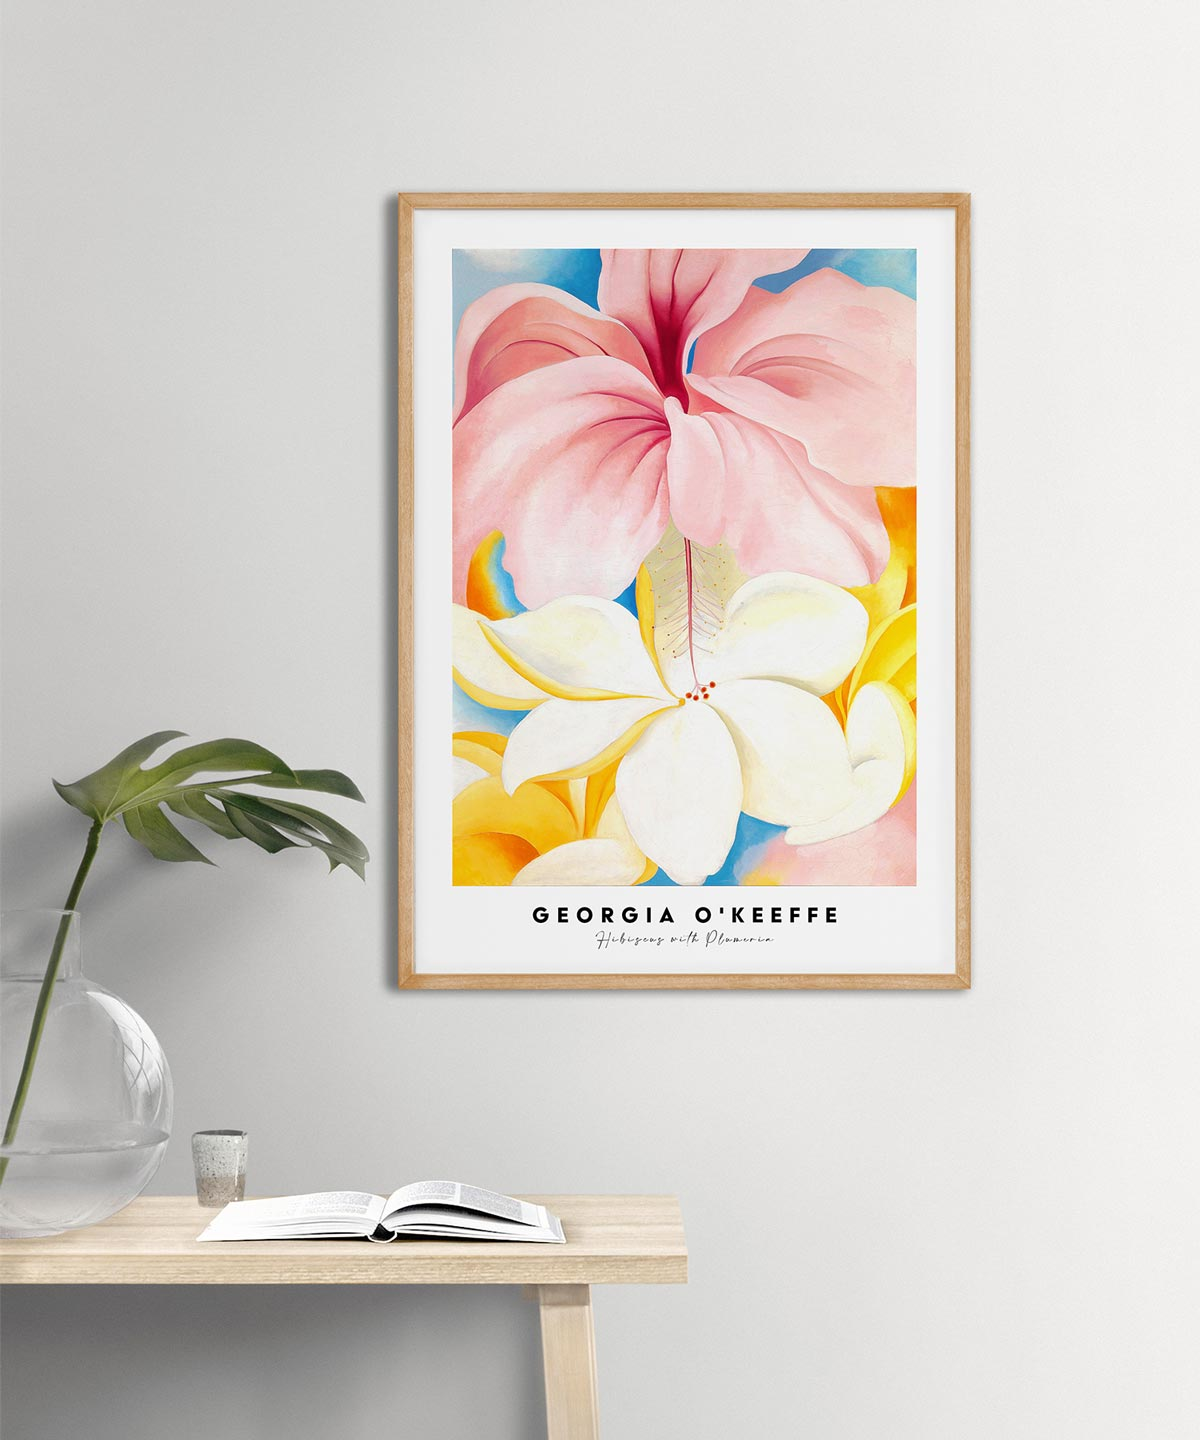 Georgia-O-Keeffe-Hibiscus-with-Plumeria-Poster---Wooden-Framed-Duwart